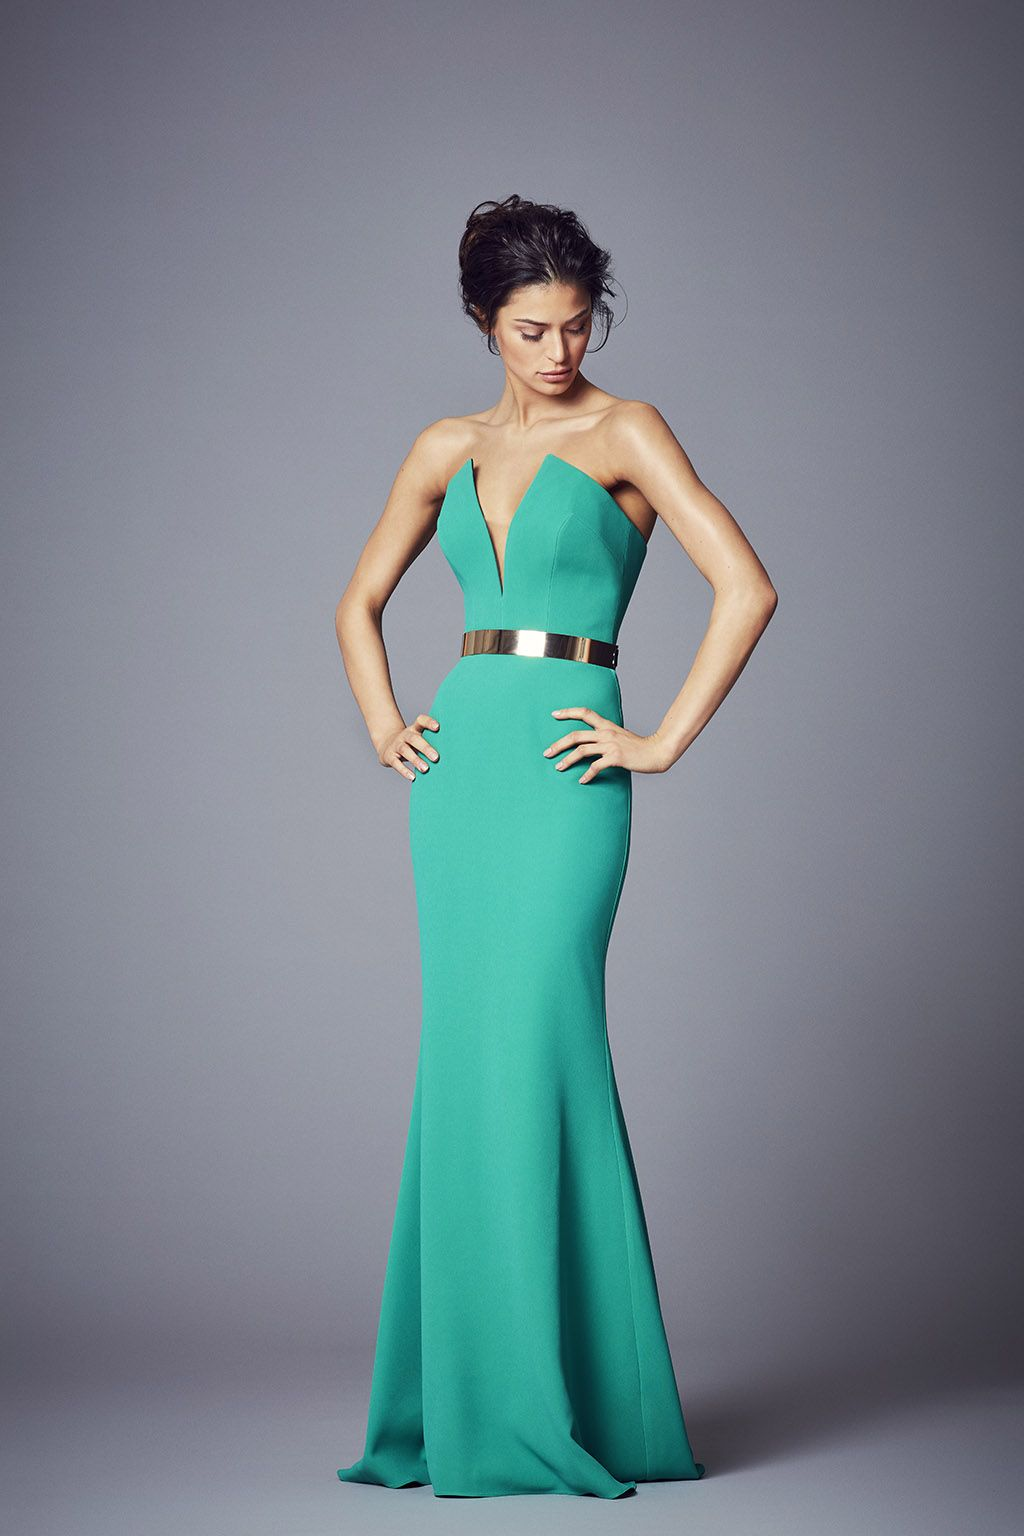 Clara - Evening Wear | Designers, Collection and Elegant dresses